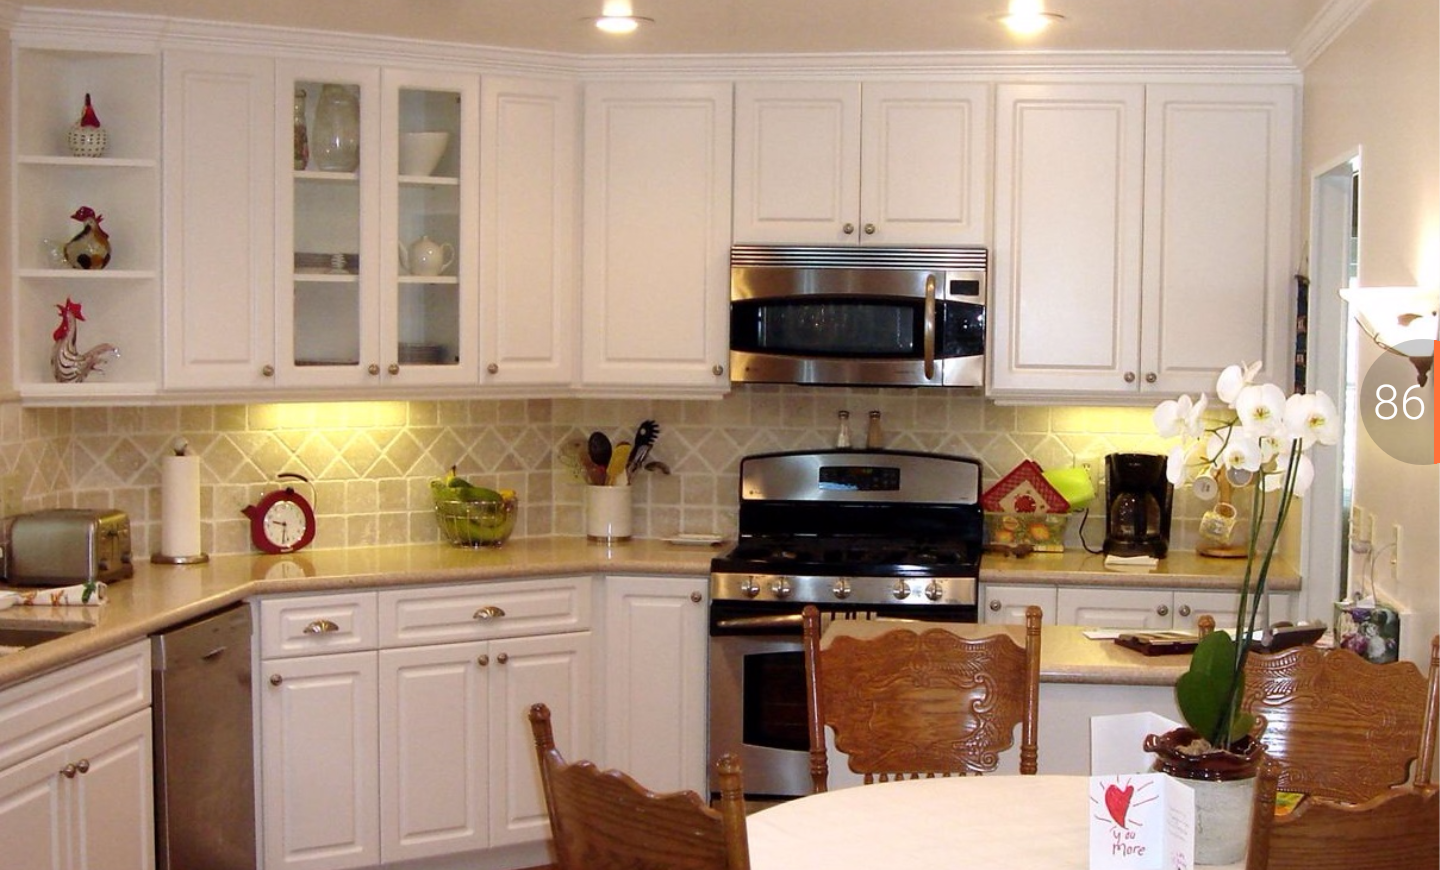 Kitchen cabinet refacing colorado springs - Cabinet Refinishing Denver